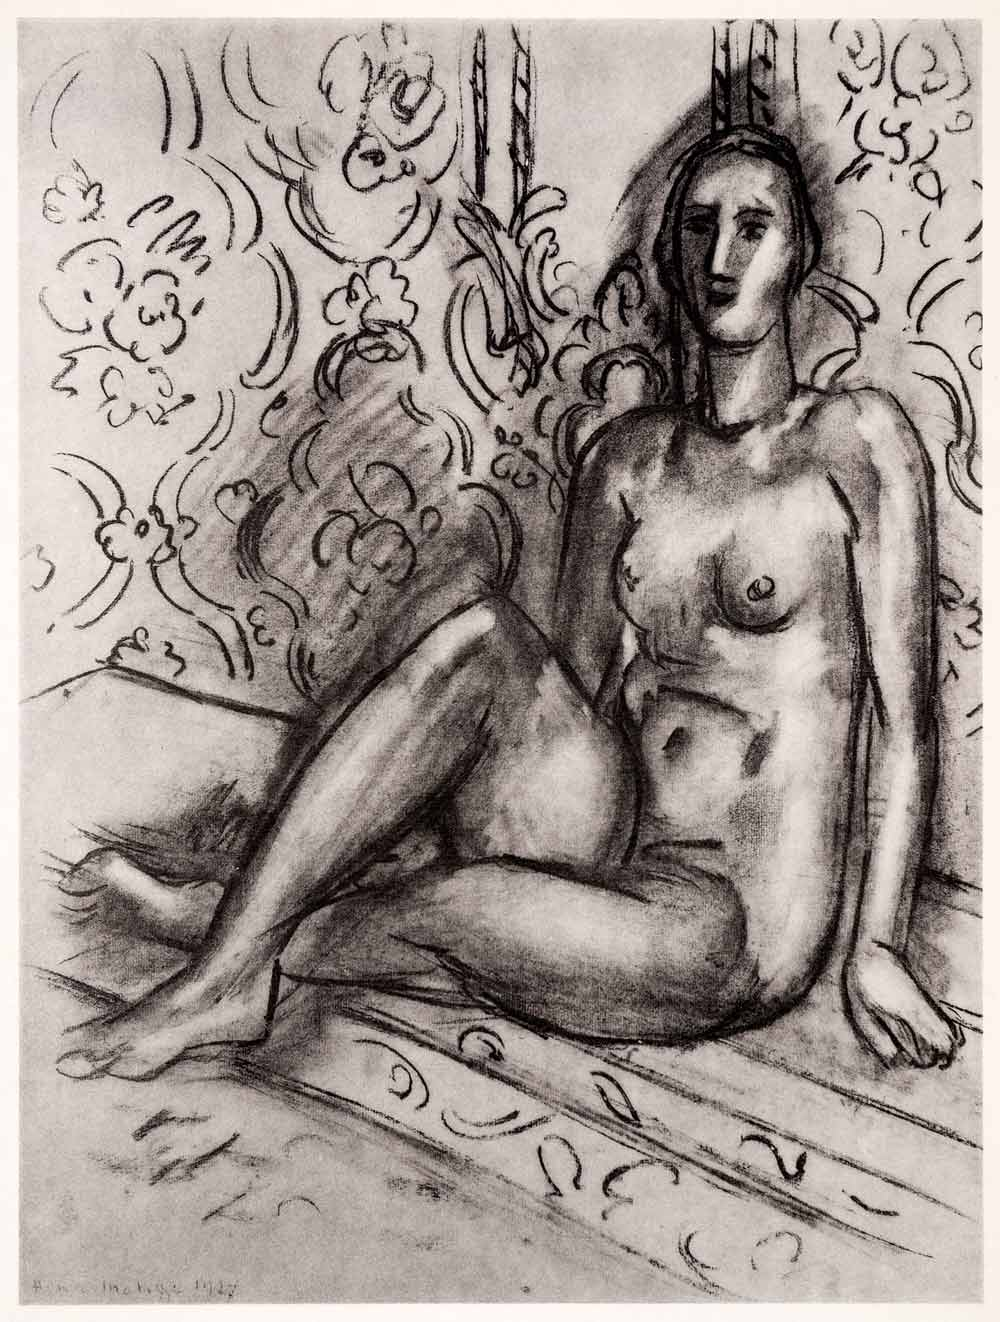 1969 Photolithograph Henri Matisse Seated Nude Sketch Naked Woman Modern Art